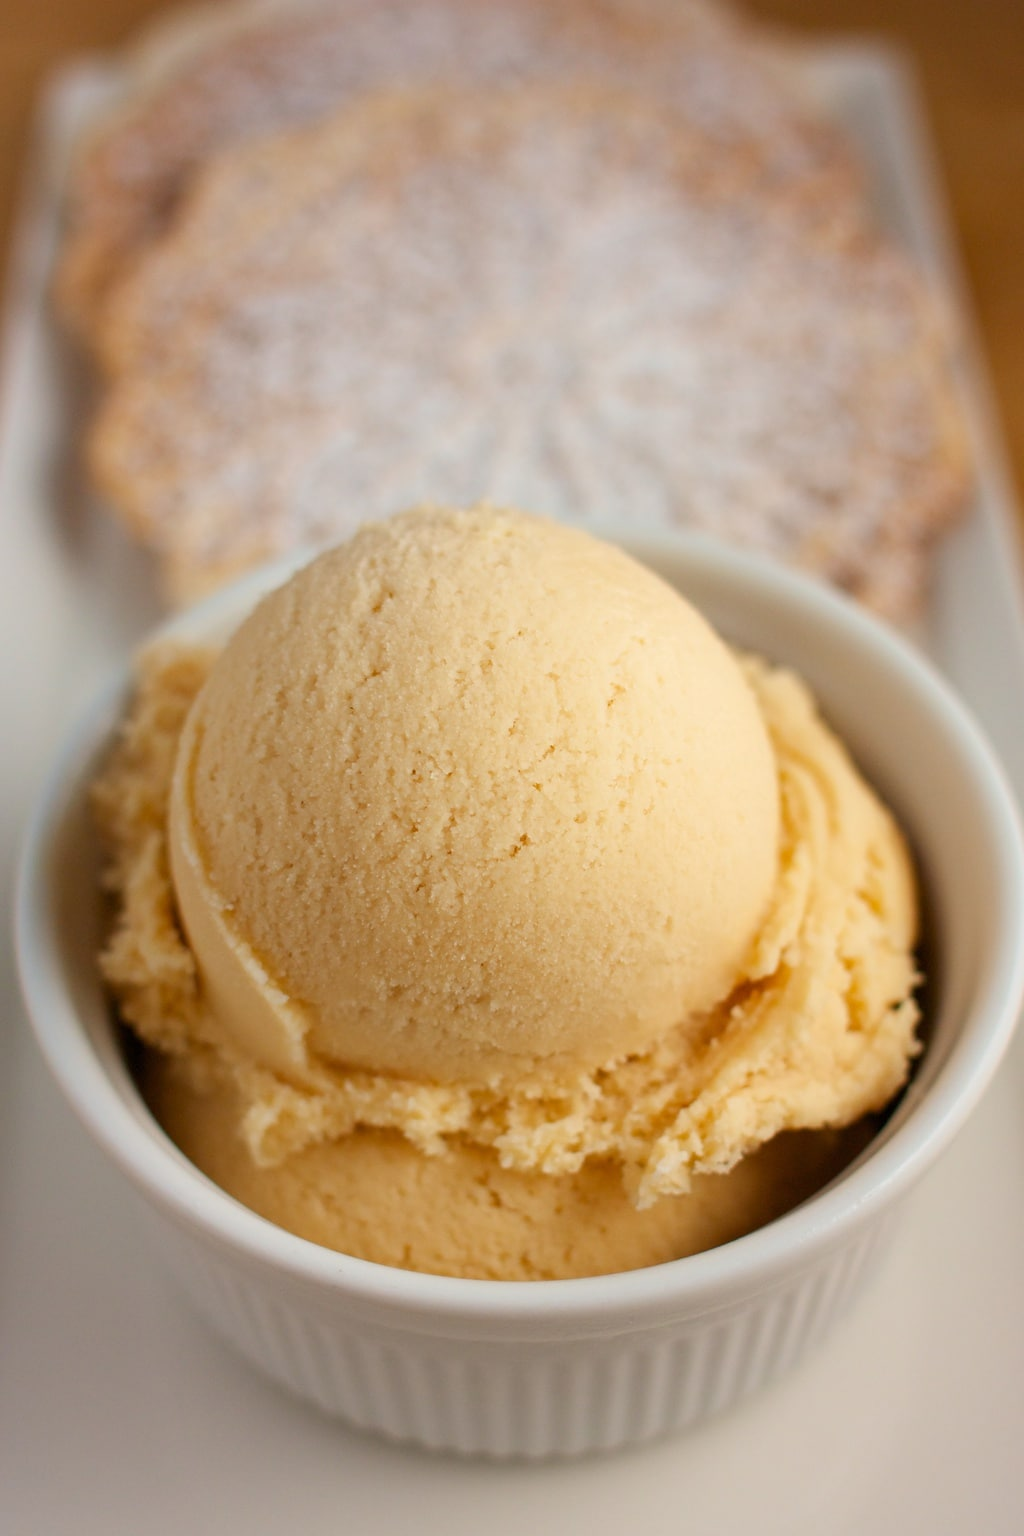 A scoop of salted caramel ice cream with pizzelle cookies